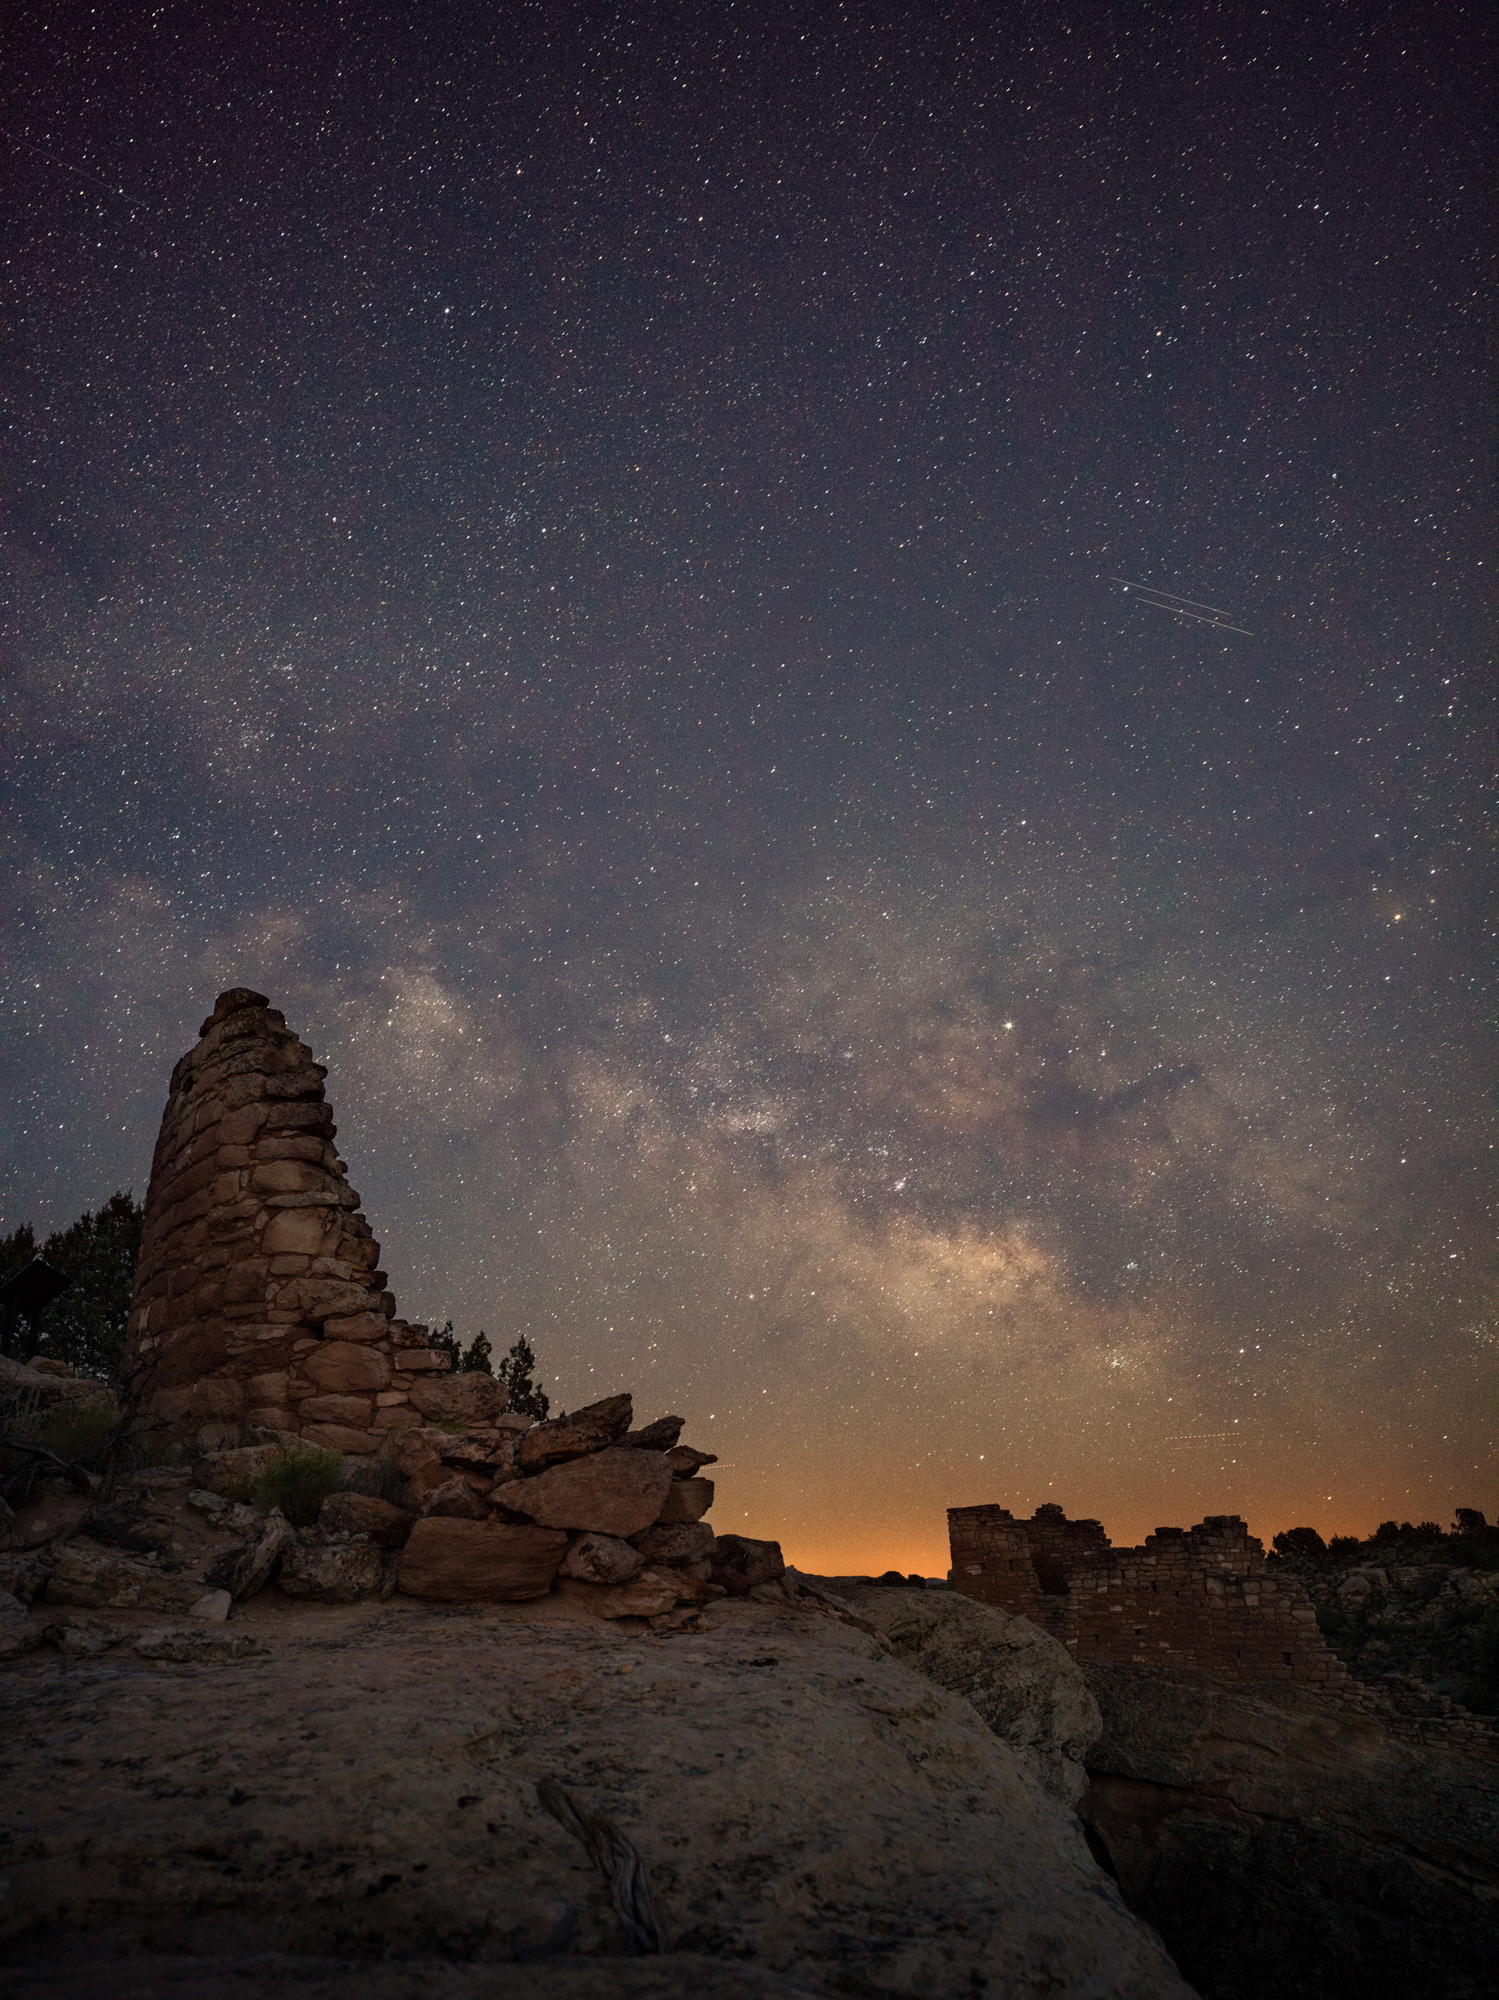 "Normal     0                     false     false     false         EN-US     X-NONE     X-NONE                                                                                                                                  The Ruins of Hovenweep.  Hasselblad X1D  and  30mm f/3.5  lens. Blend of foreground at 6 minutes, f/4, ISO 800 and sky at 23 seconds, f/4, ISO 6400. © Gabriel Biderman.                                                                                                                                                                                                                                                                                                                                                                                                                                                                                                                                                                                    /* Style Definitions */  table.MsoNormalTable 	{mso-style-name:""Table Normal""; 	mso-tstyle-rowband-size:0; 	mso-tstyle-colband-size:0; 	mso-style-noshow:yes; 	mso-style-priority:99; 	mso-style-parent:""""; 	mso-padding-alt:0in 5.4pt 0in 5.4pt; 	mso-para-margin:0in; 	mso-para-margin-bottom:.0001pt; 	mso-pagination:widow-orphan; 	font-size:10.0pt; 	font-family:""Times New Roman"",""serif""; 	border:none;}"